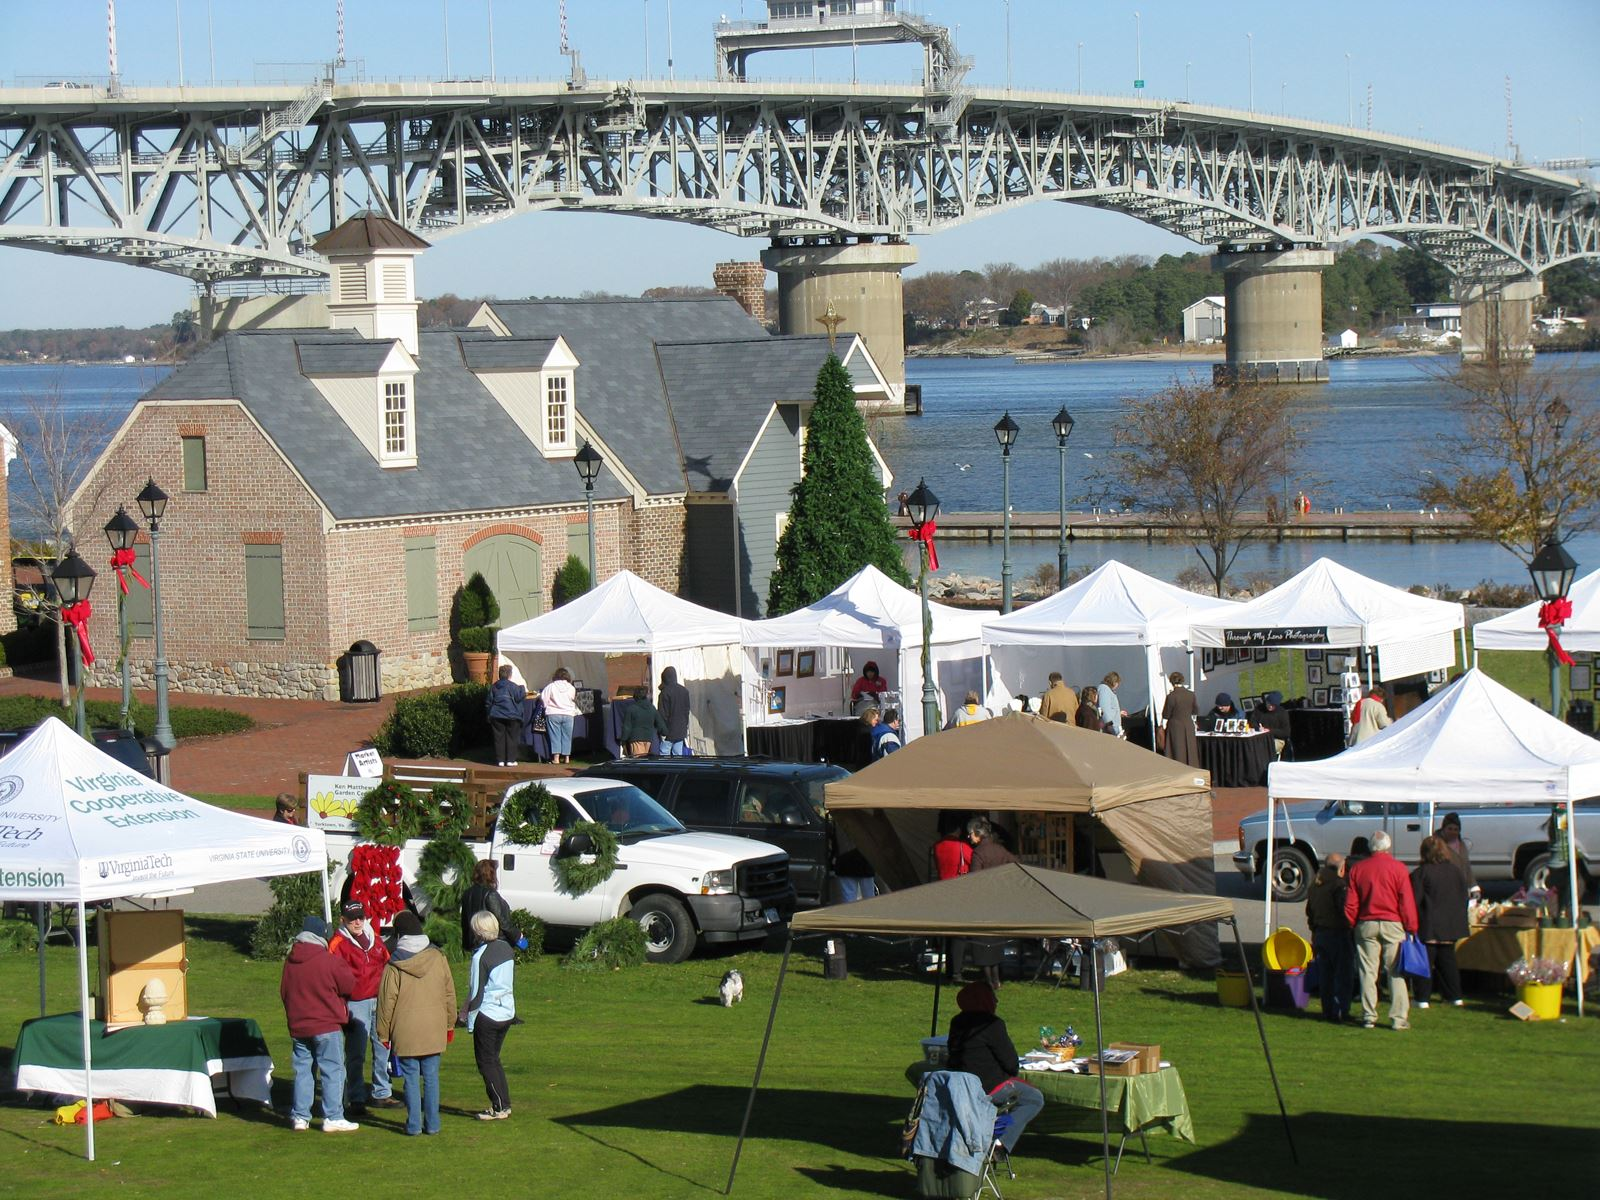 Market setup with York River in the background